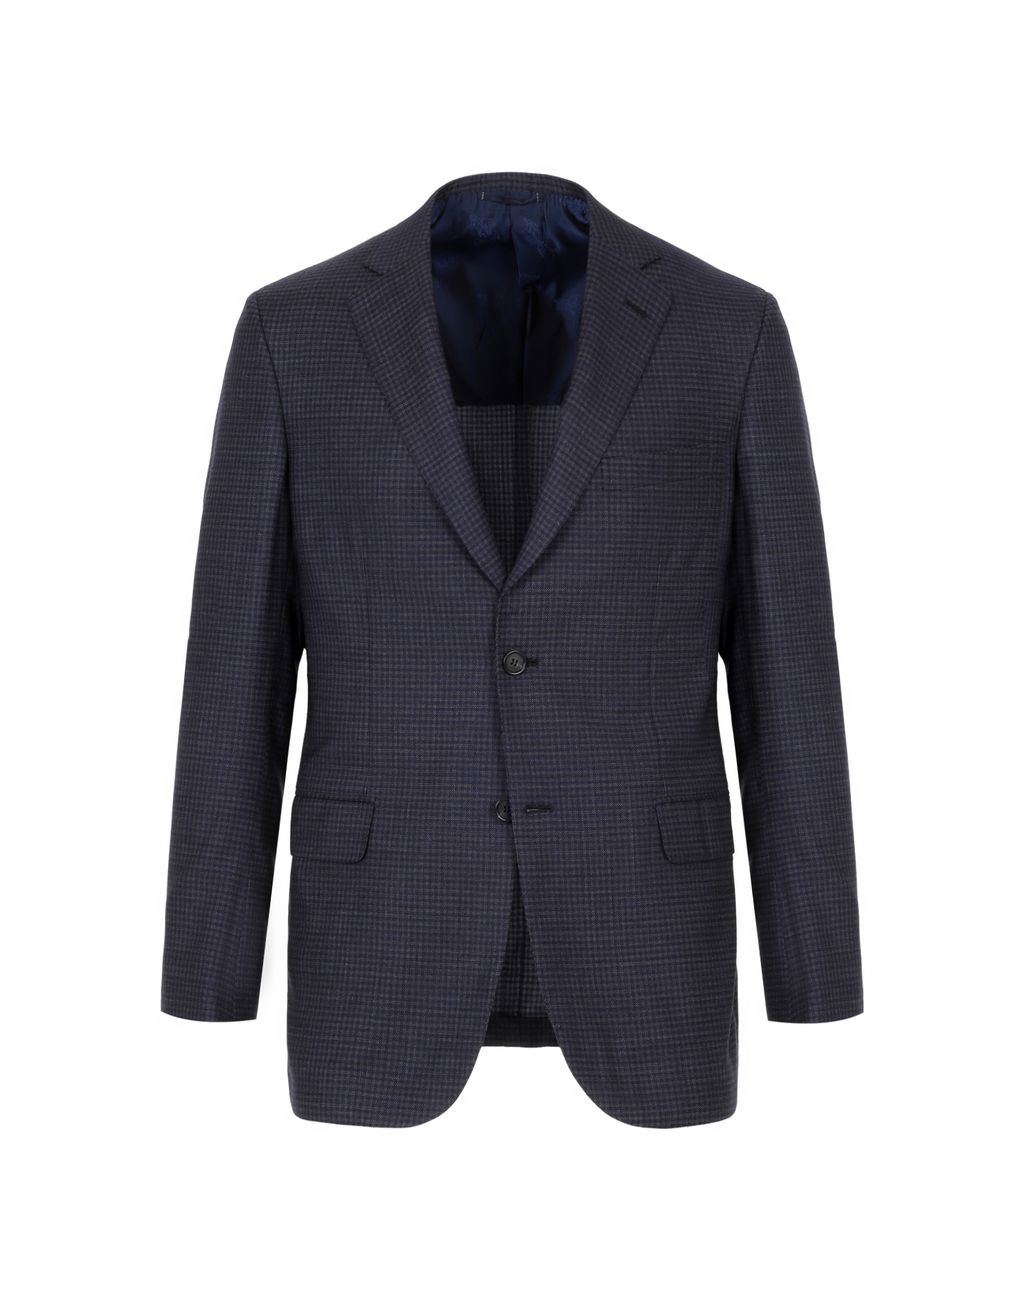 BRIONI Blue and Gray Micro-Check Ventiquattro Ravello Jacket Suits & Jackets Man f